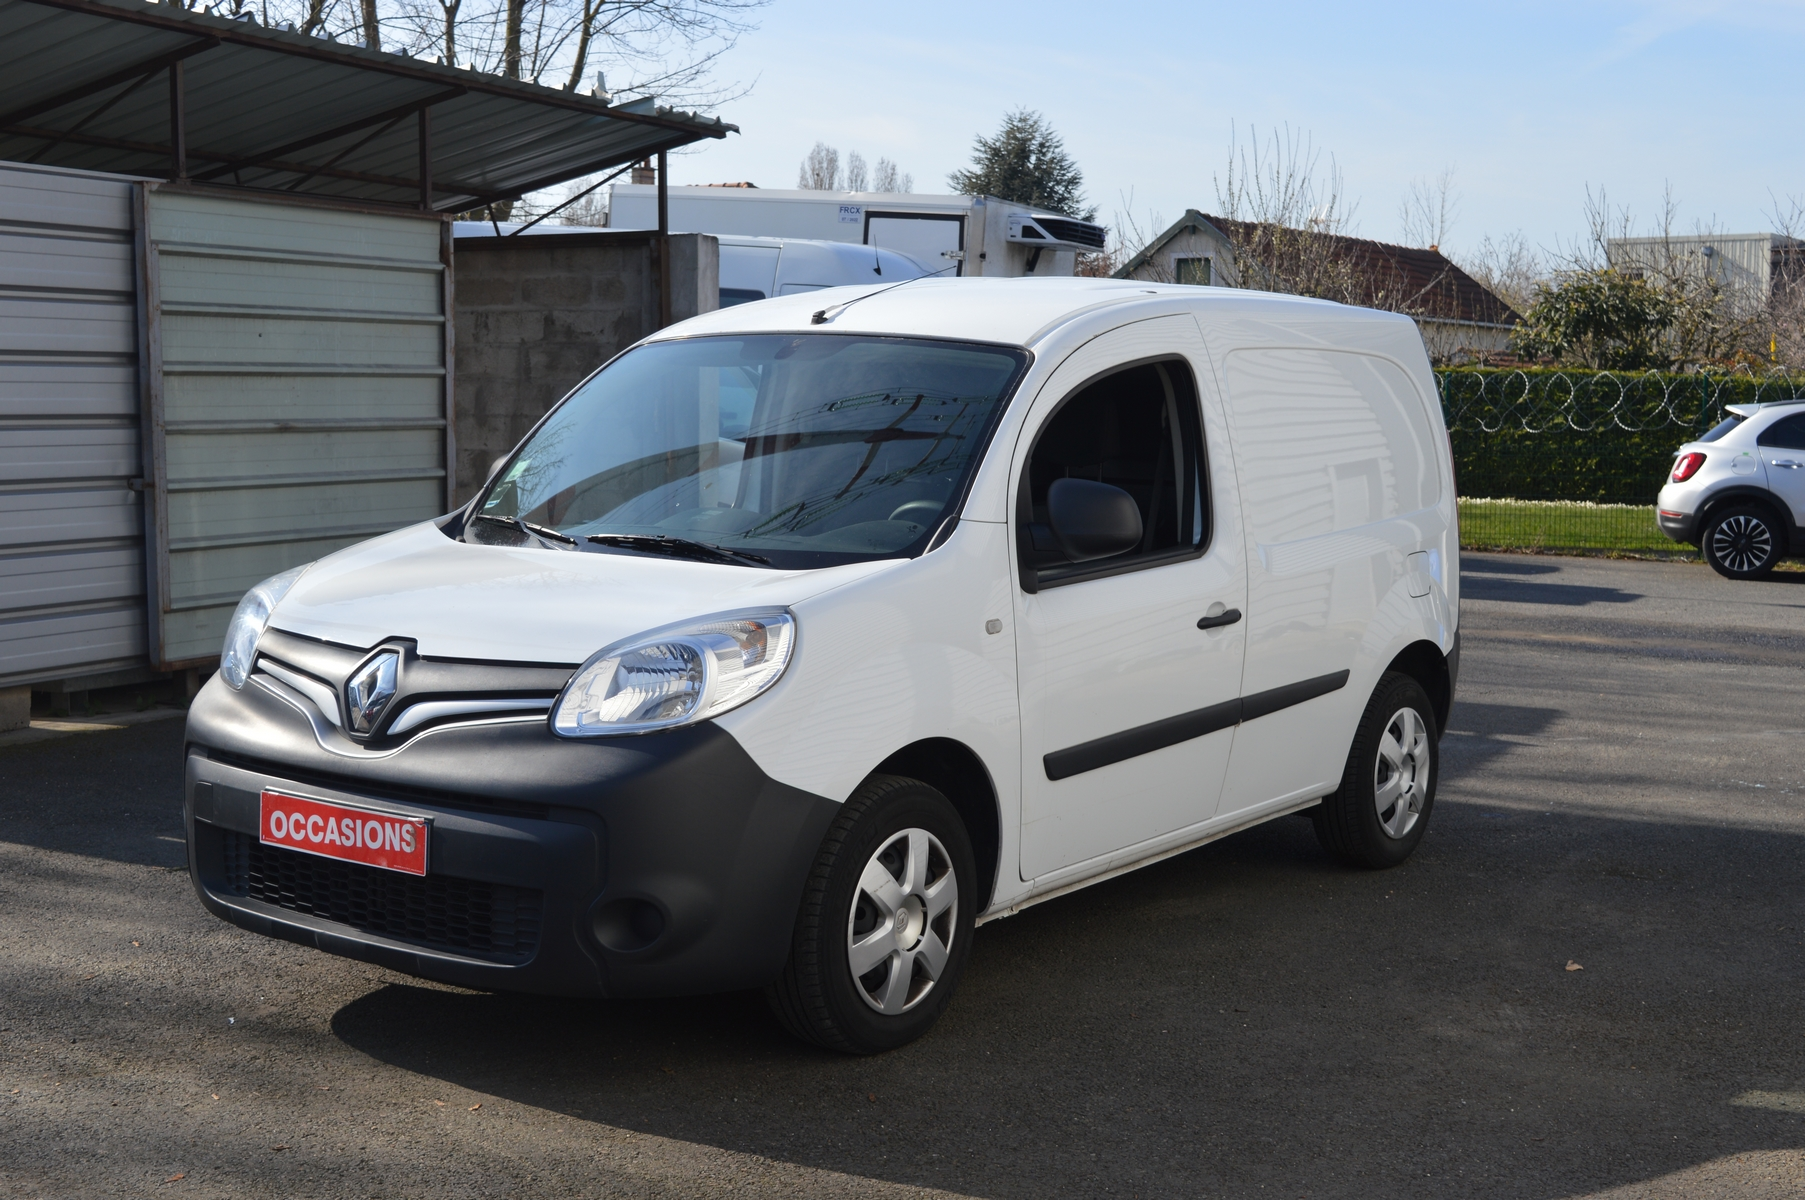 RENAULT KANGOO EXPRESS 1.5 DCI 90 ENERGY E6 EXTRA R-LINK d'occasion